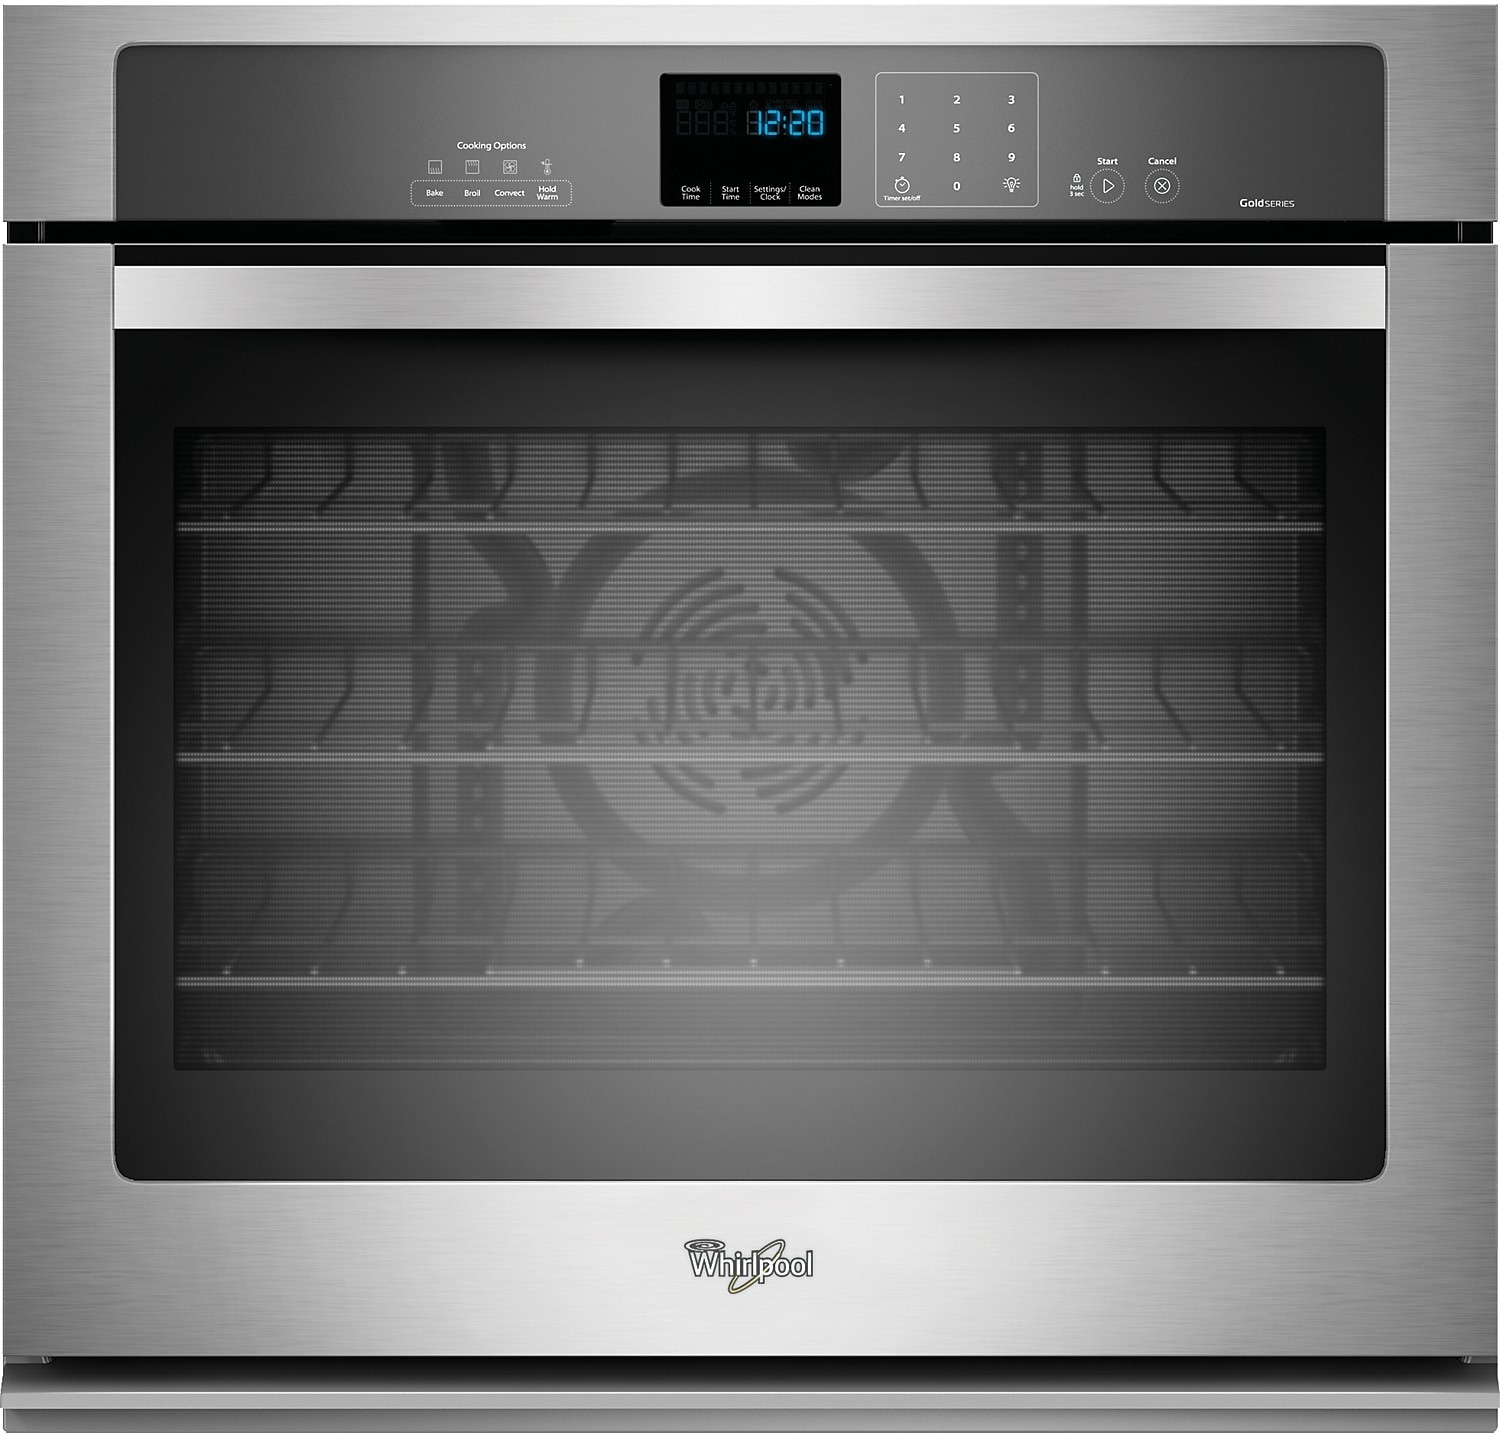 Whirlpool white ice microwave canada - Whirlpool Gold 5 0 Cu Ft Single Wall Oven Stainless Steel